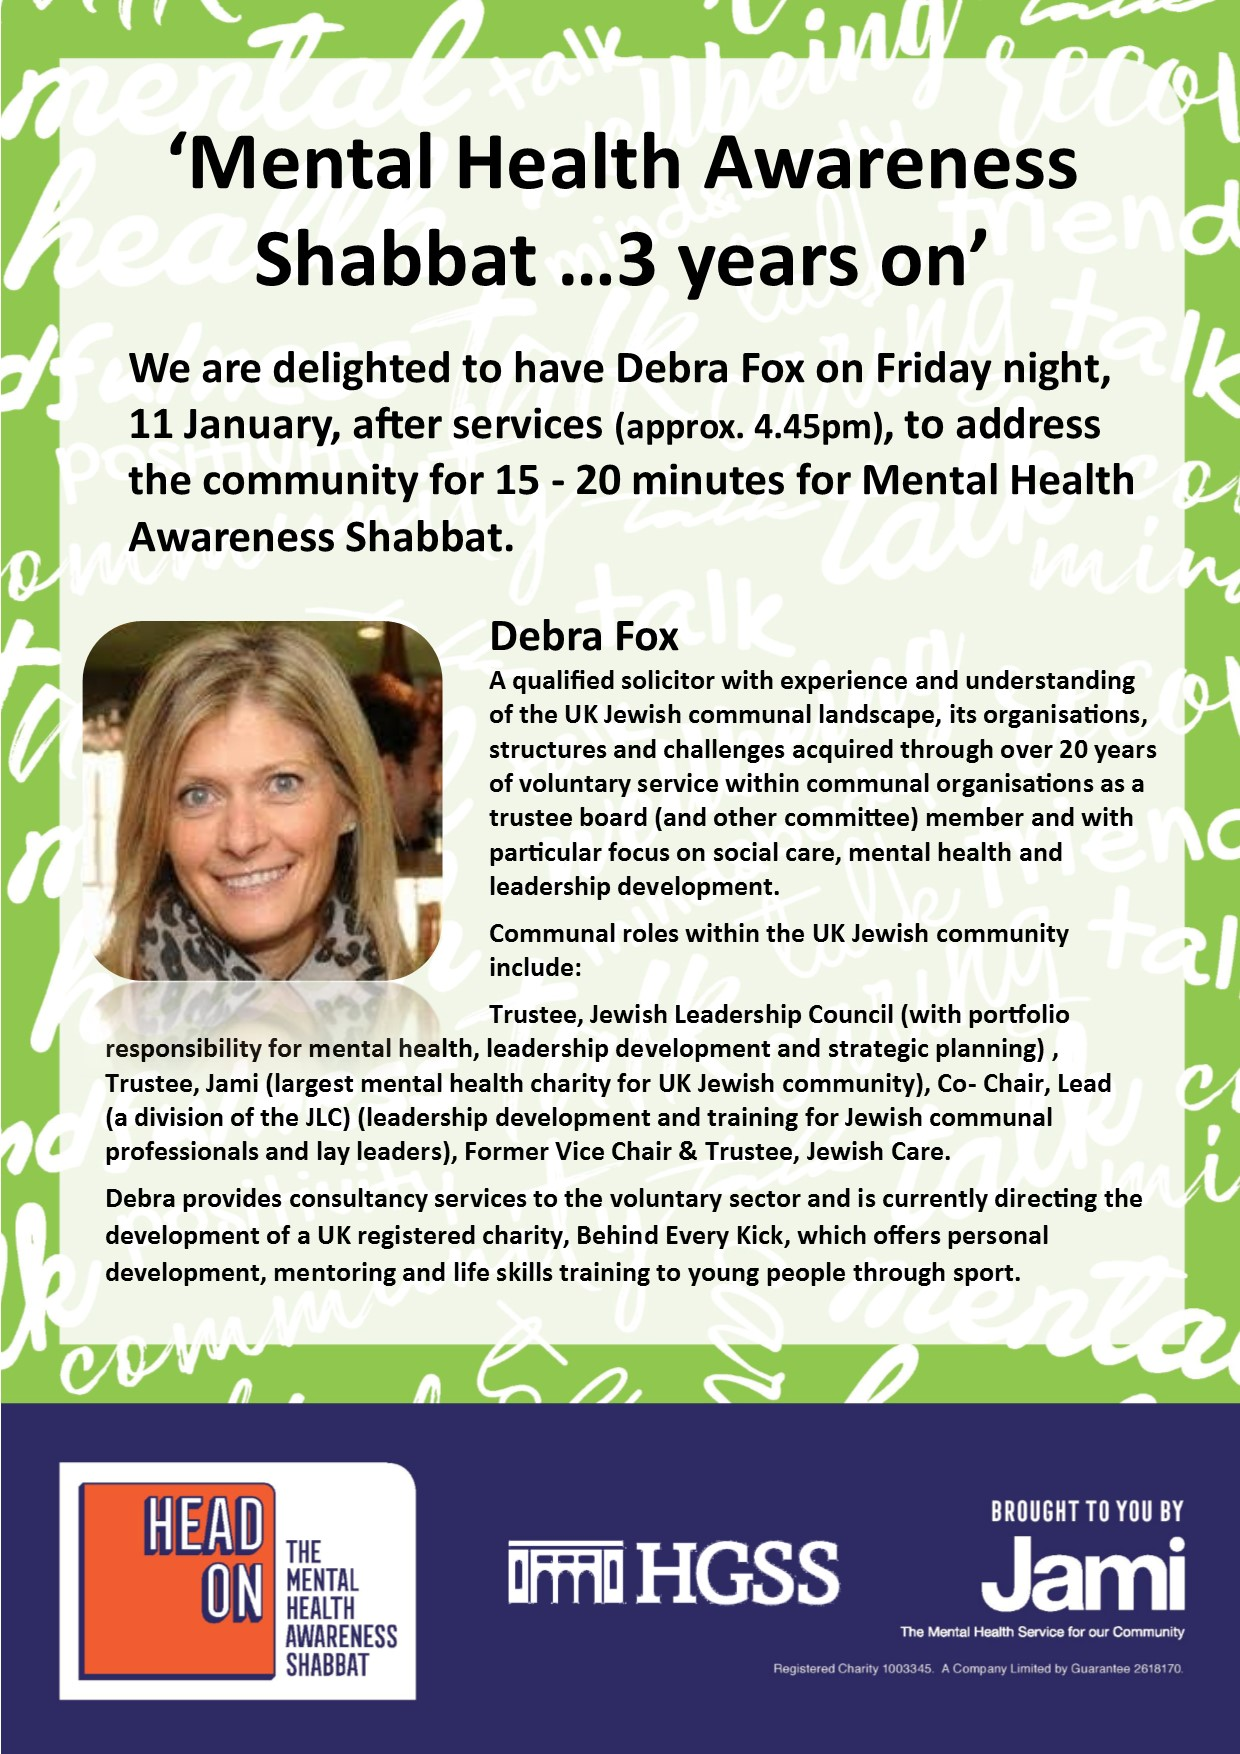 Mental Health Shabbat @ HGSS